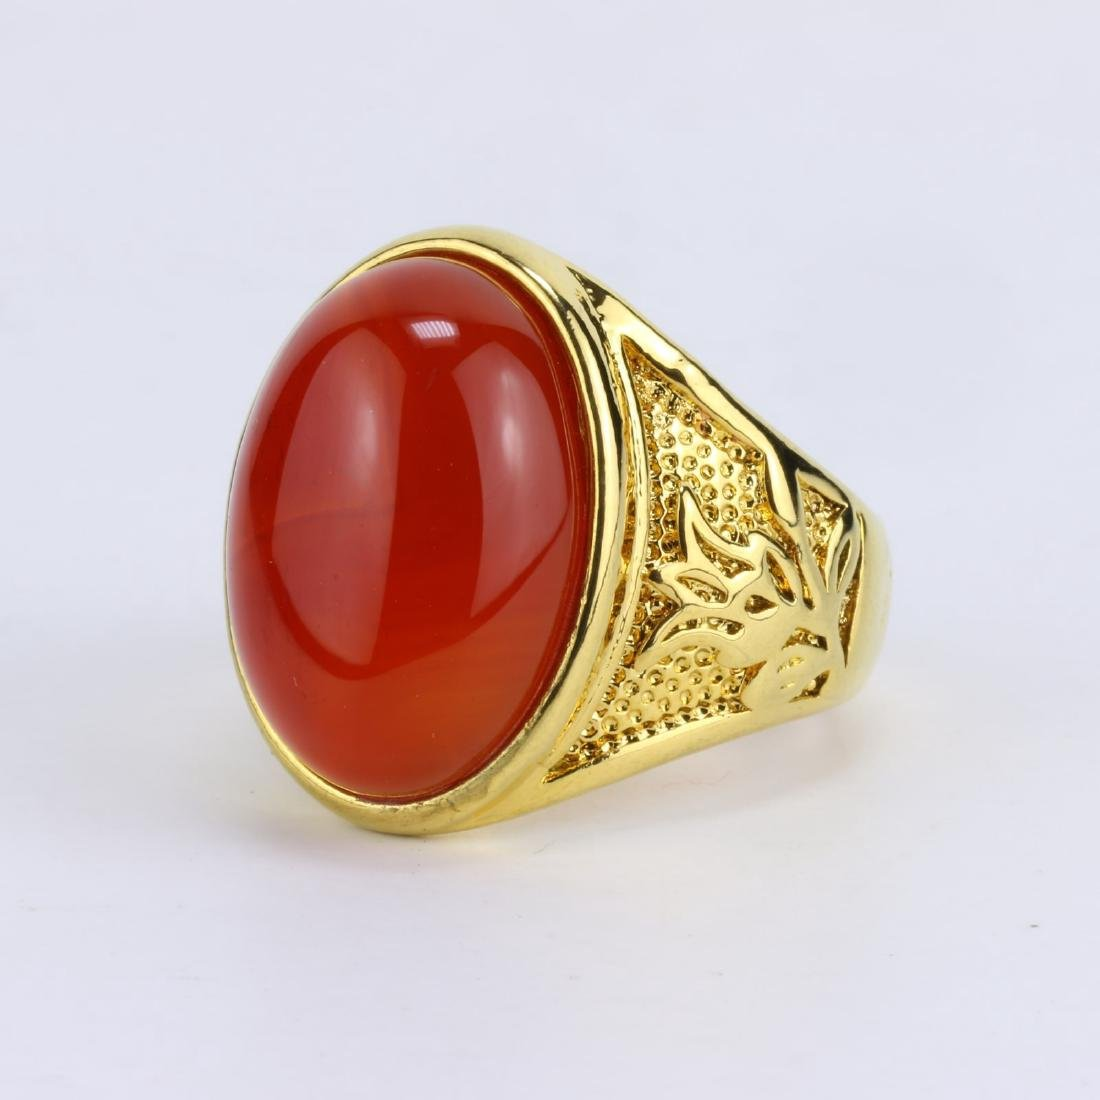 A CHINESE RED JADE OR JADEITE MEN'S RING